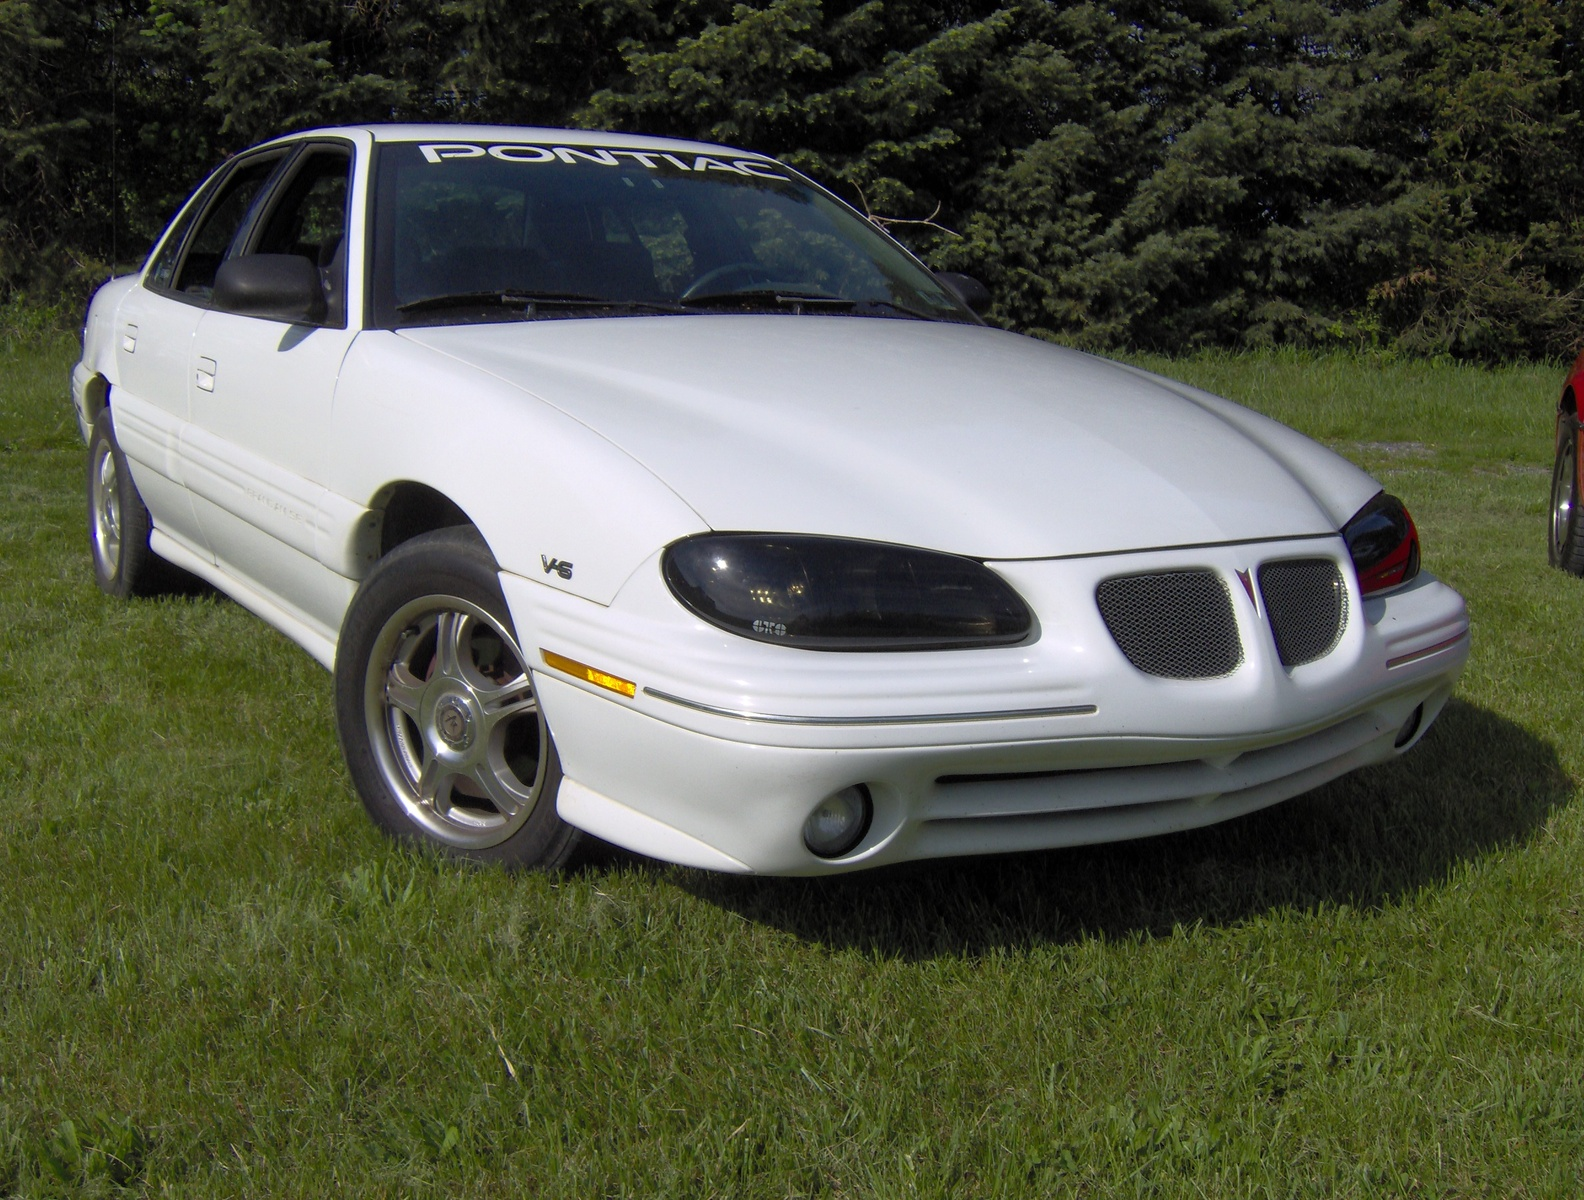 Picture of 1997 Pontiac Grand Am 4 Dr SE Sedan